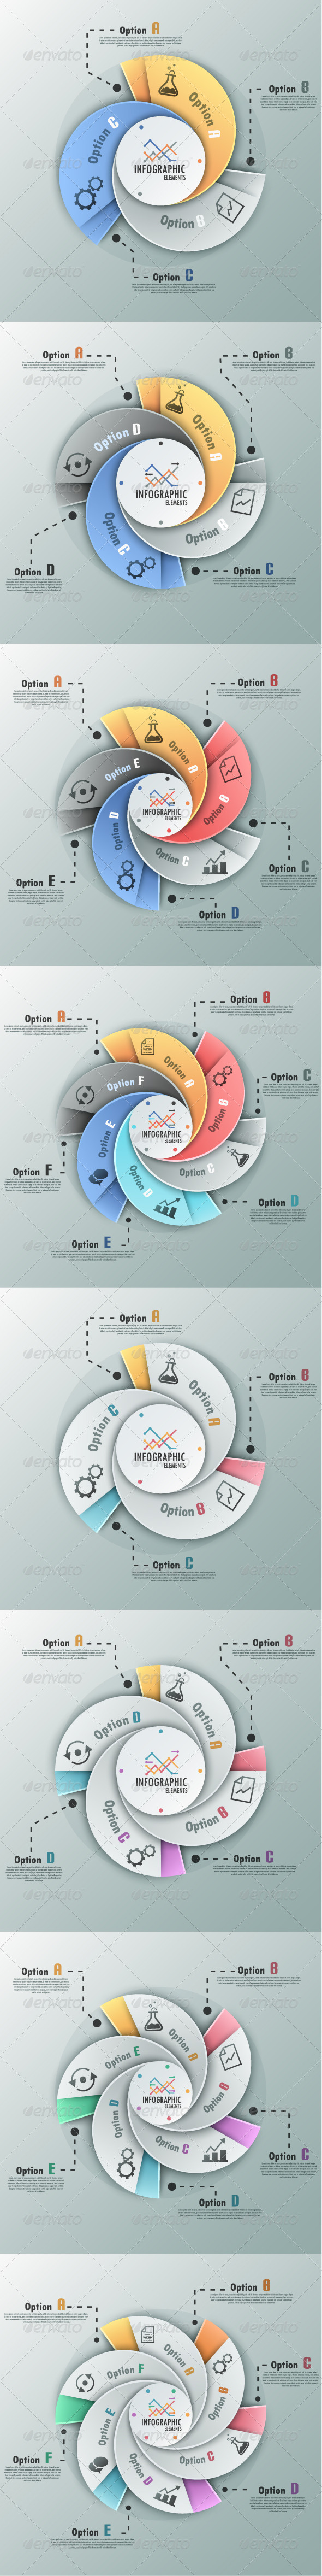 GraphicRiver Modern Infographic Options Banner 8 Versions 7531239